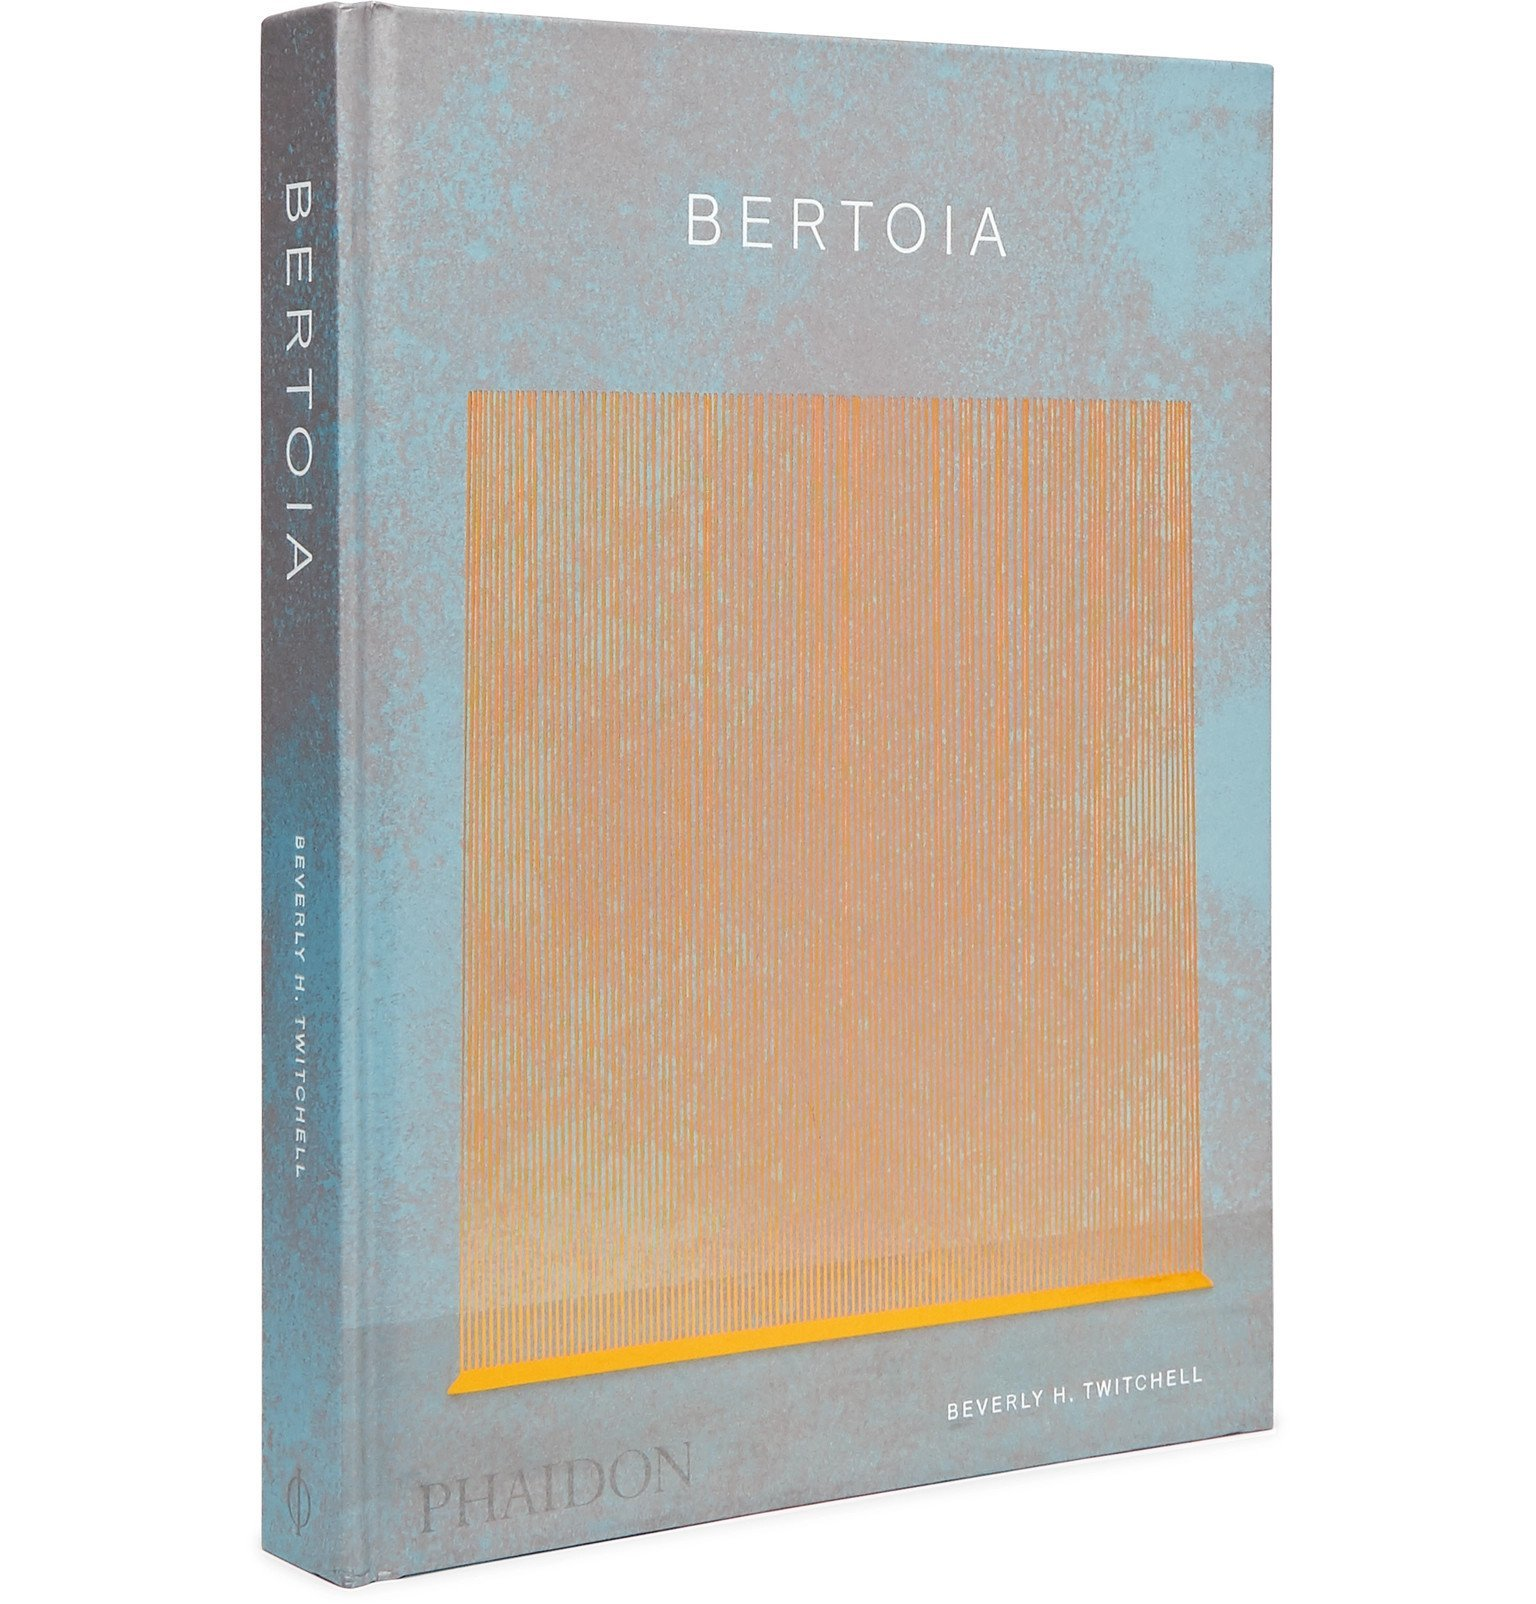 Photo: Phaidon - Bertoia: The Metalworker Hardcover Book - Green